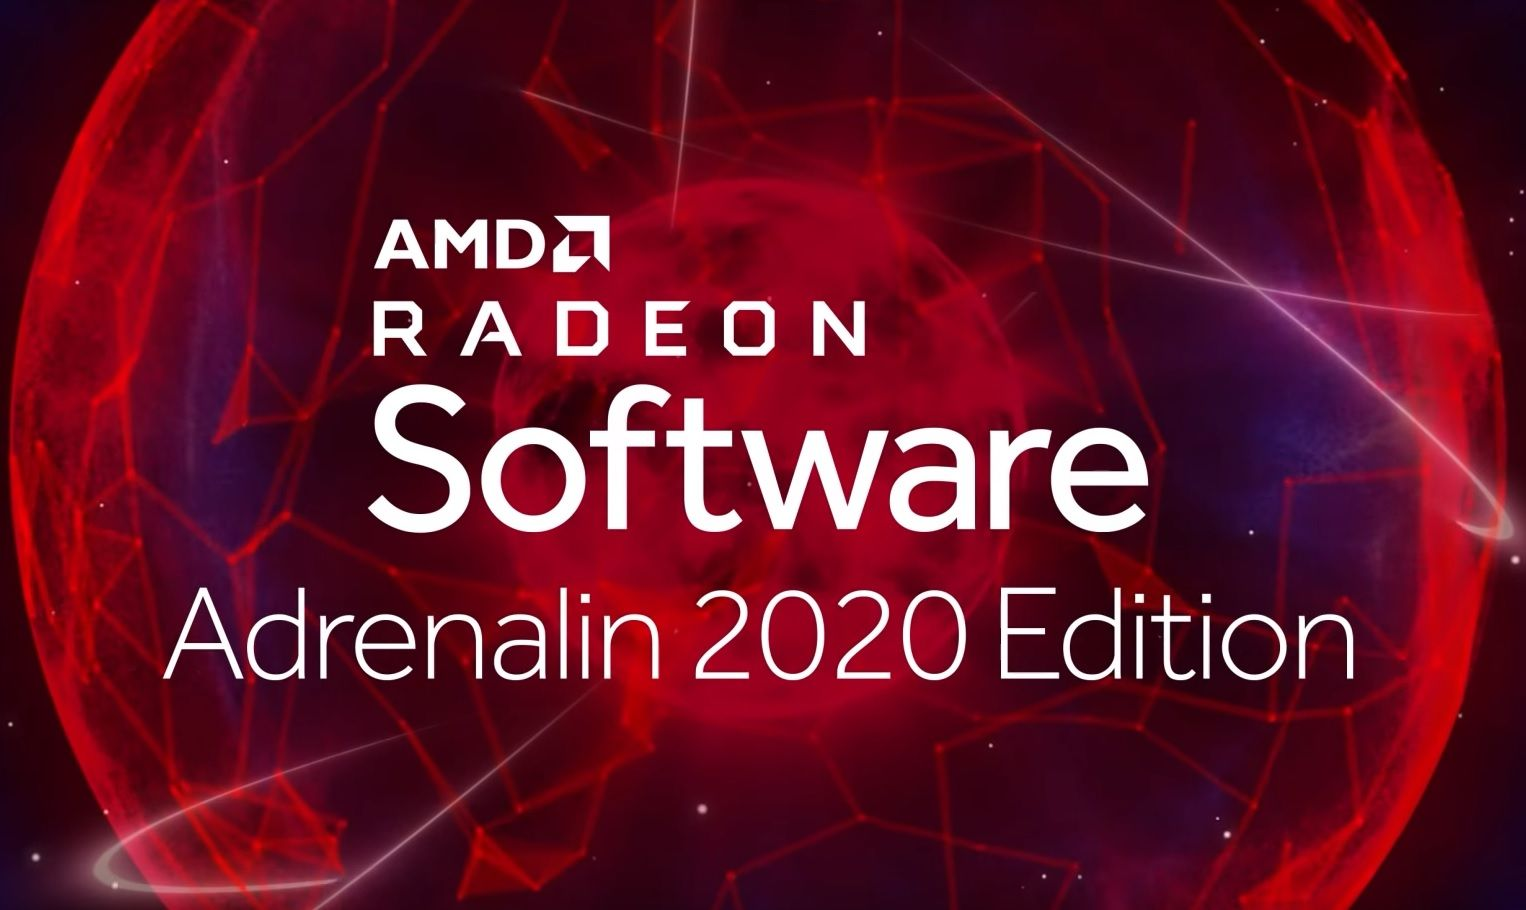 Amd Releases Radeon Software Adrenalin 2020 Edition Update For The New Rx 5600 Xt Graphics Card Amd Radeon Software Adrenalin In 2020 Graphic Card Amd Tech News